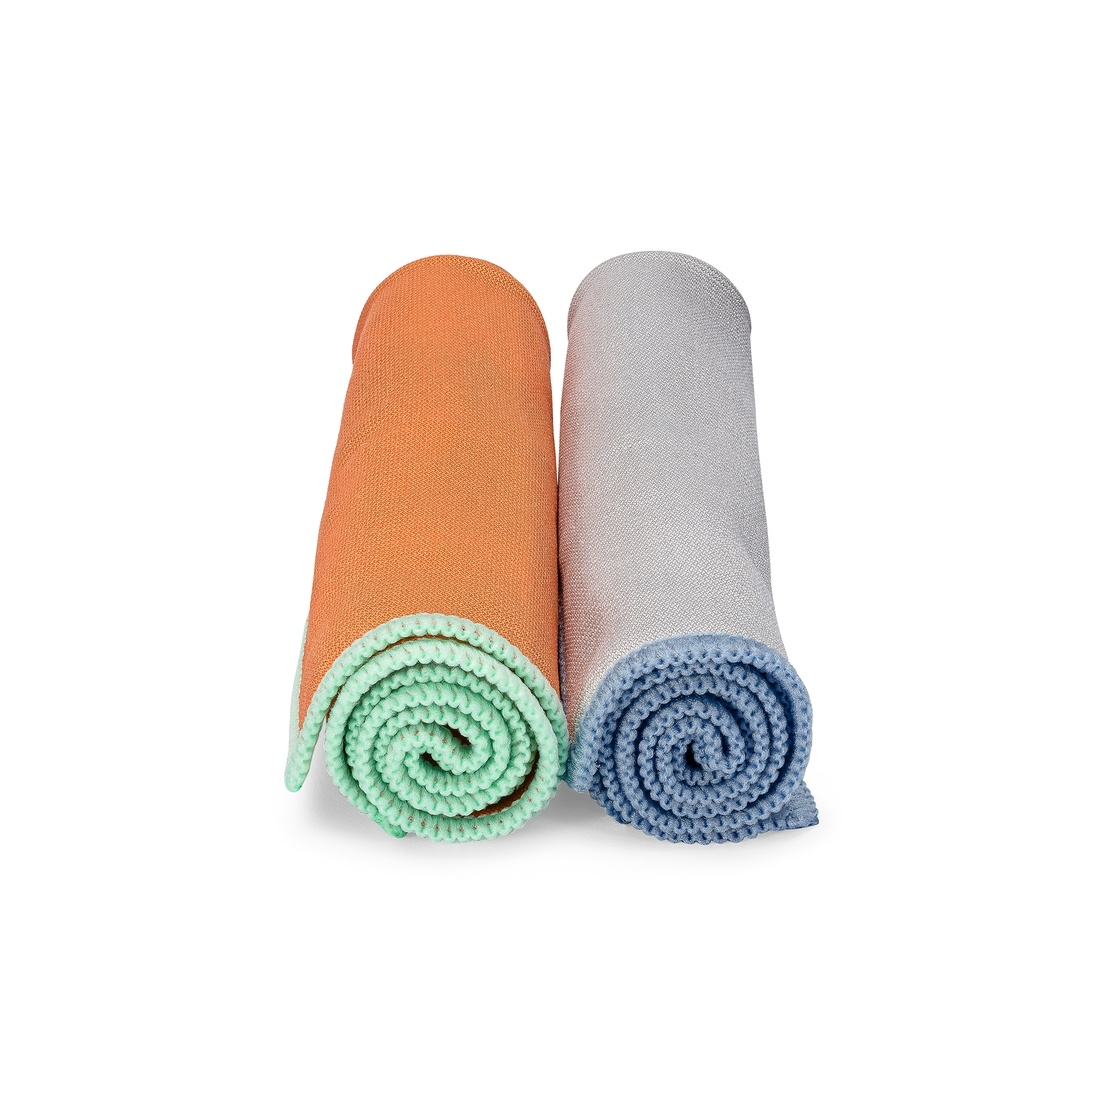 Full Circle Home Renew Recycled Glass Microfiber Cloth (Set of 2)